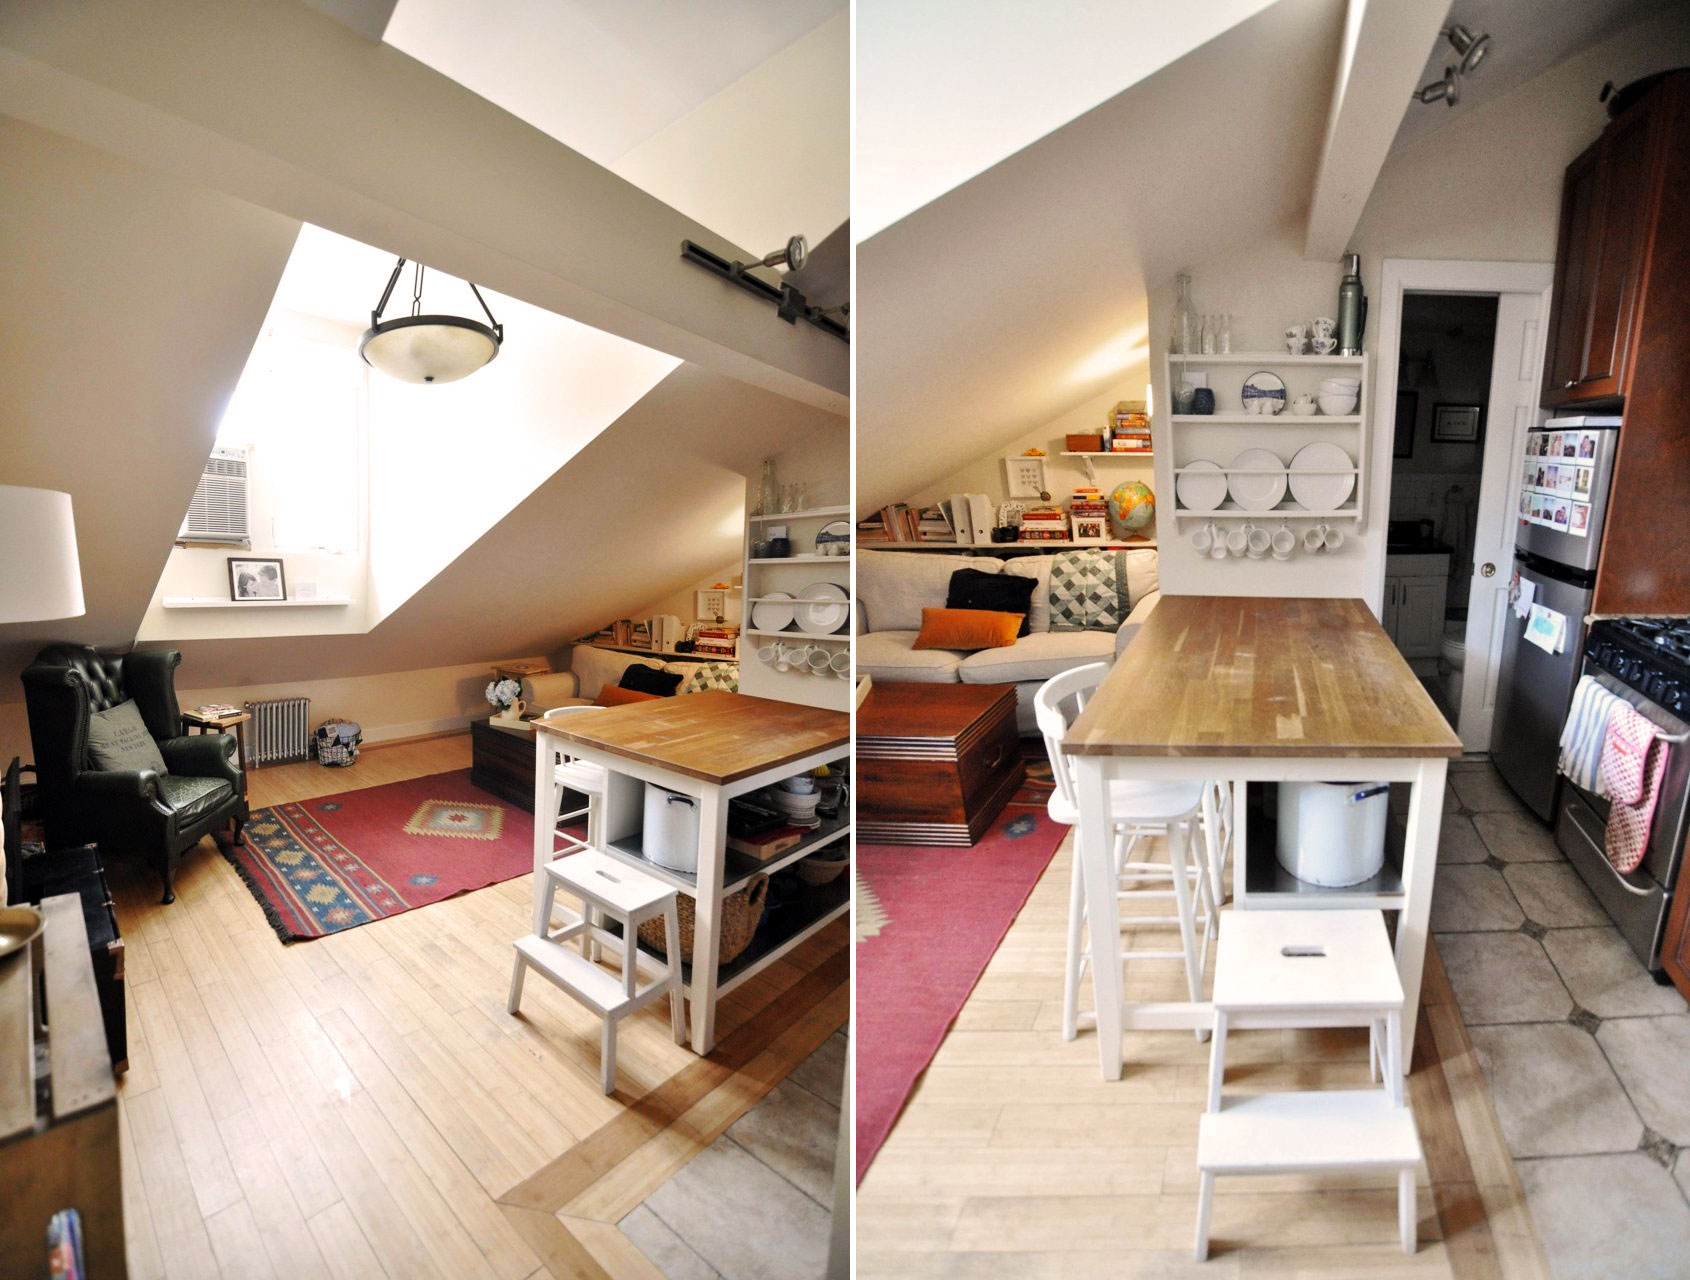 Good Meatpacking District Attic Apartment, Nyc Attic Apartments